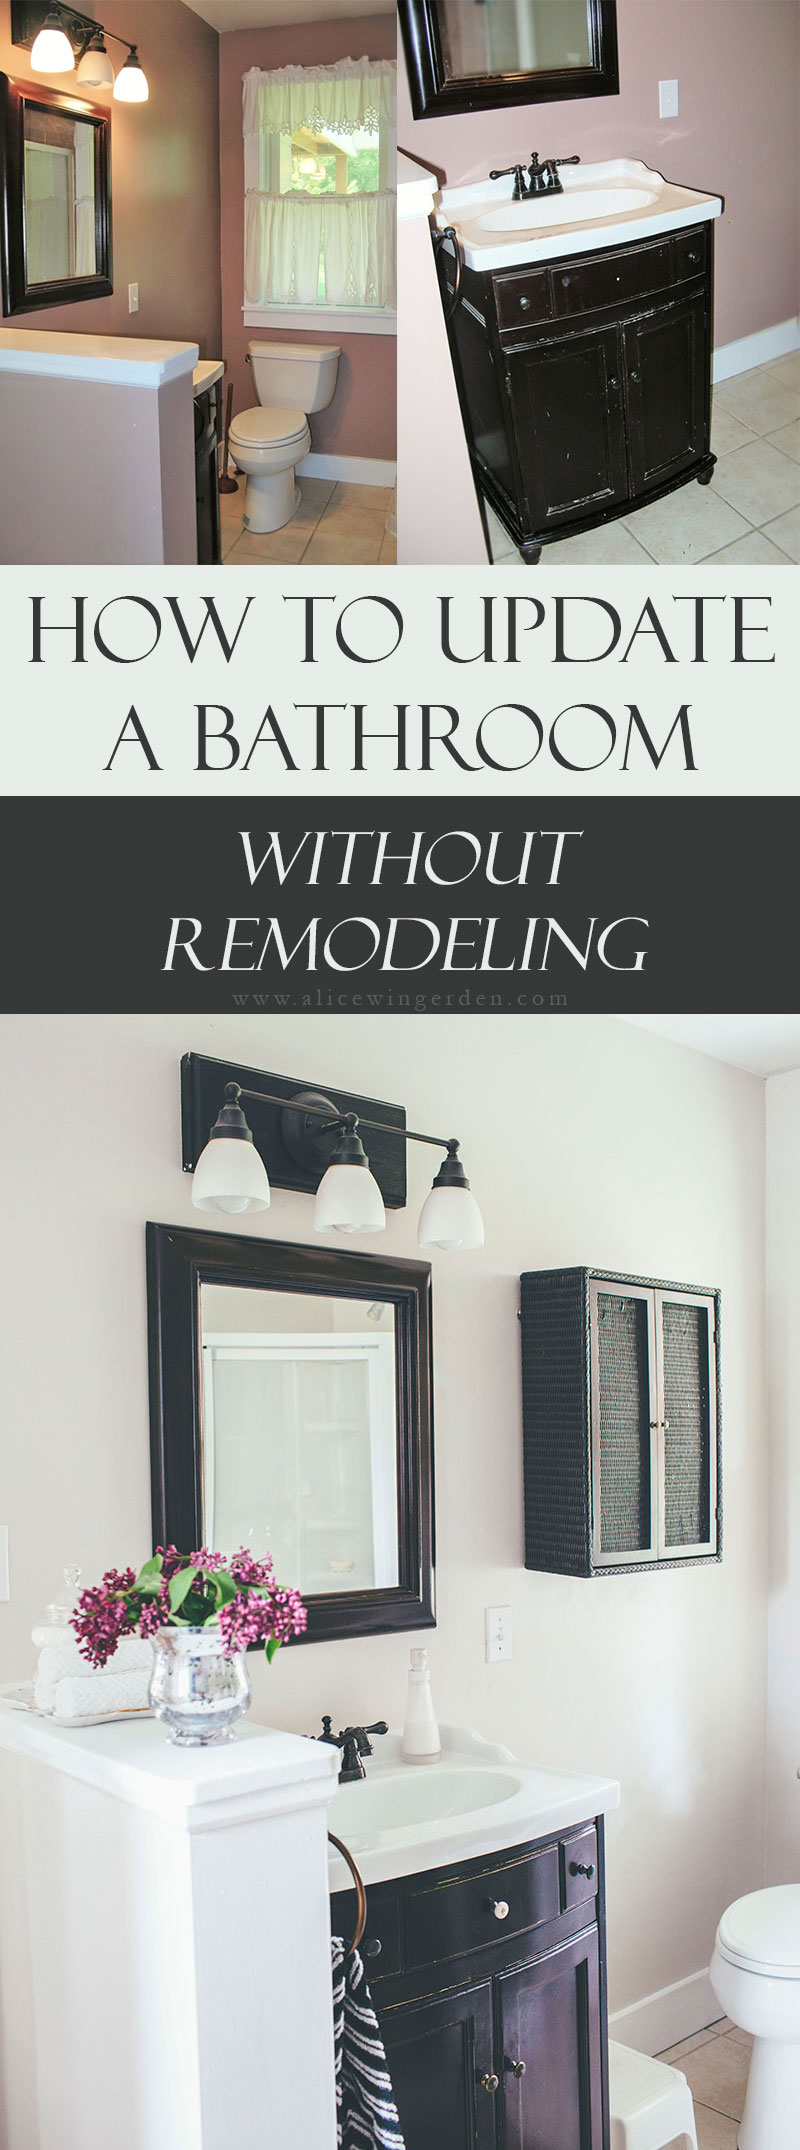 How to Update a Bathroom Without Remodeling